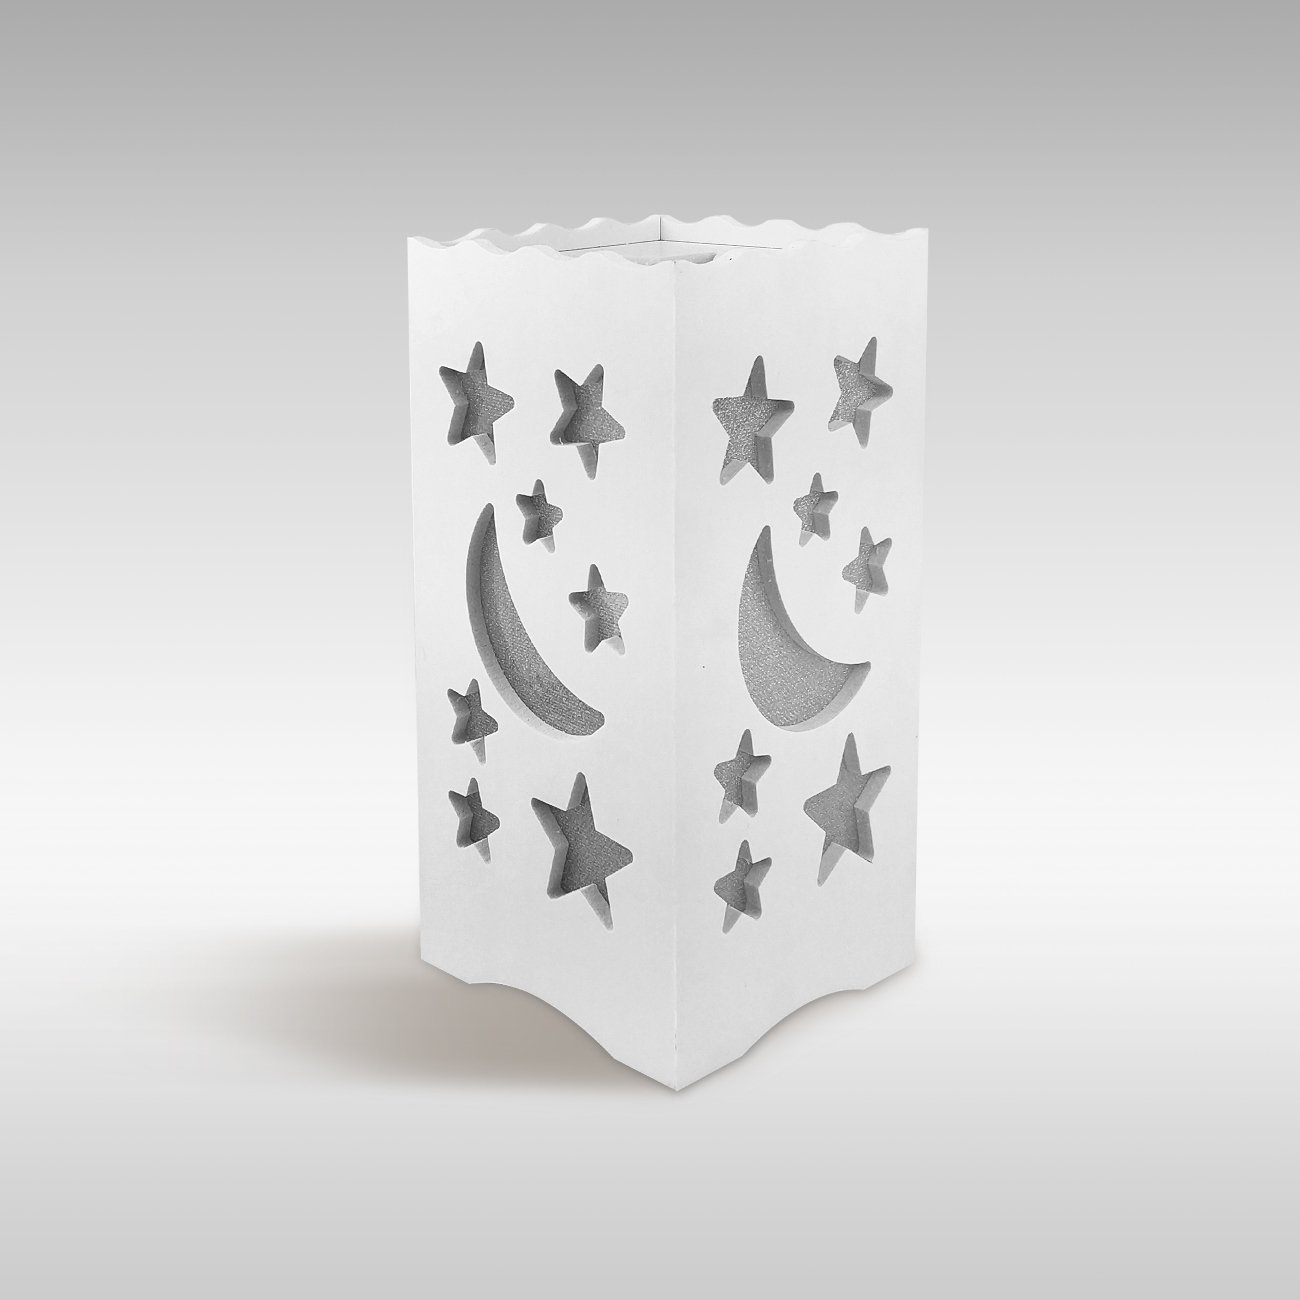 DIJIANI Bedside Table Lamp Simple Night Stand Lamp Contemporary Small Bedside Desk Lamp with Moon and Stars Cutout for Living Room, Bedroom, Study, Hotel, White